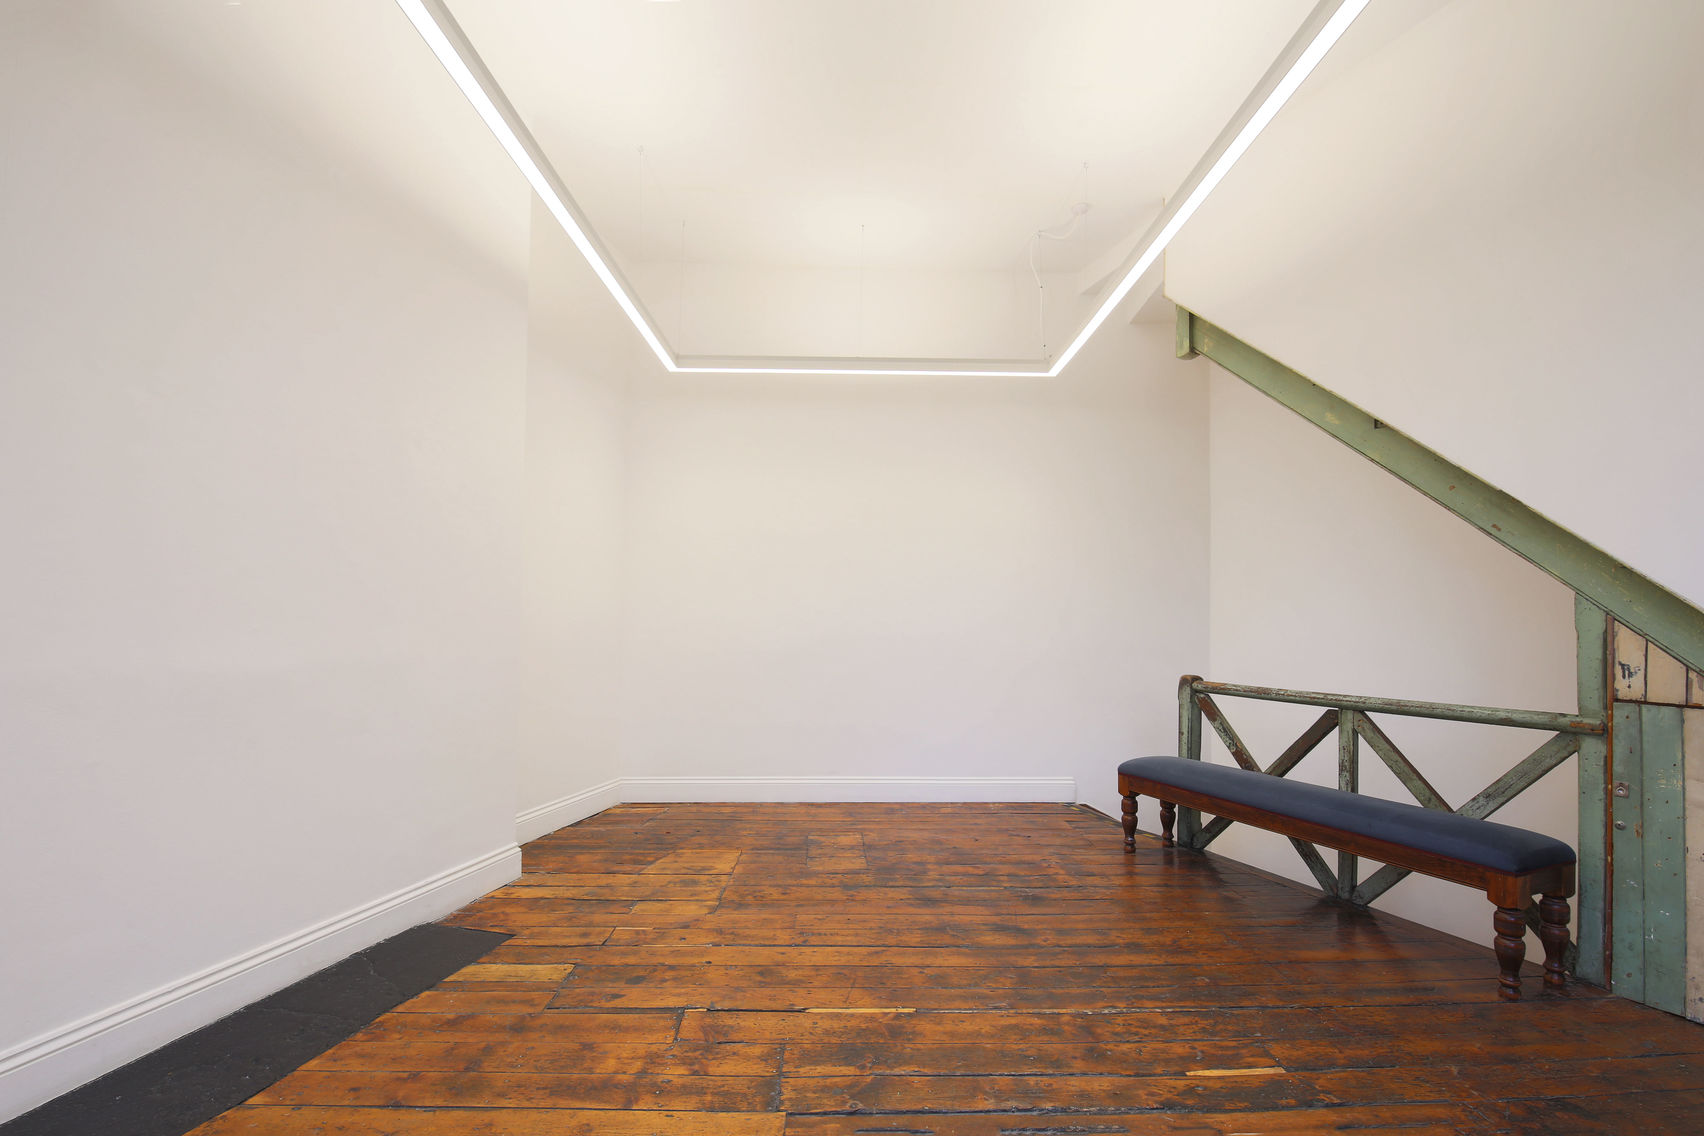 Venue hire, Clerkenwell Gallery